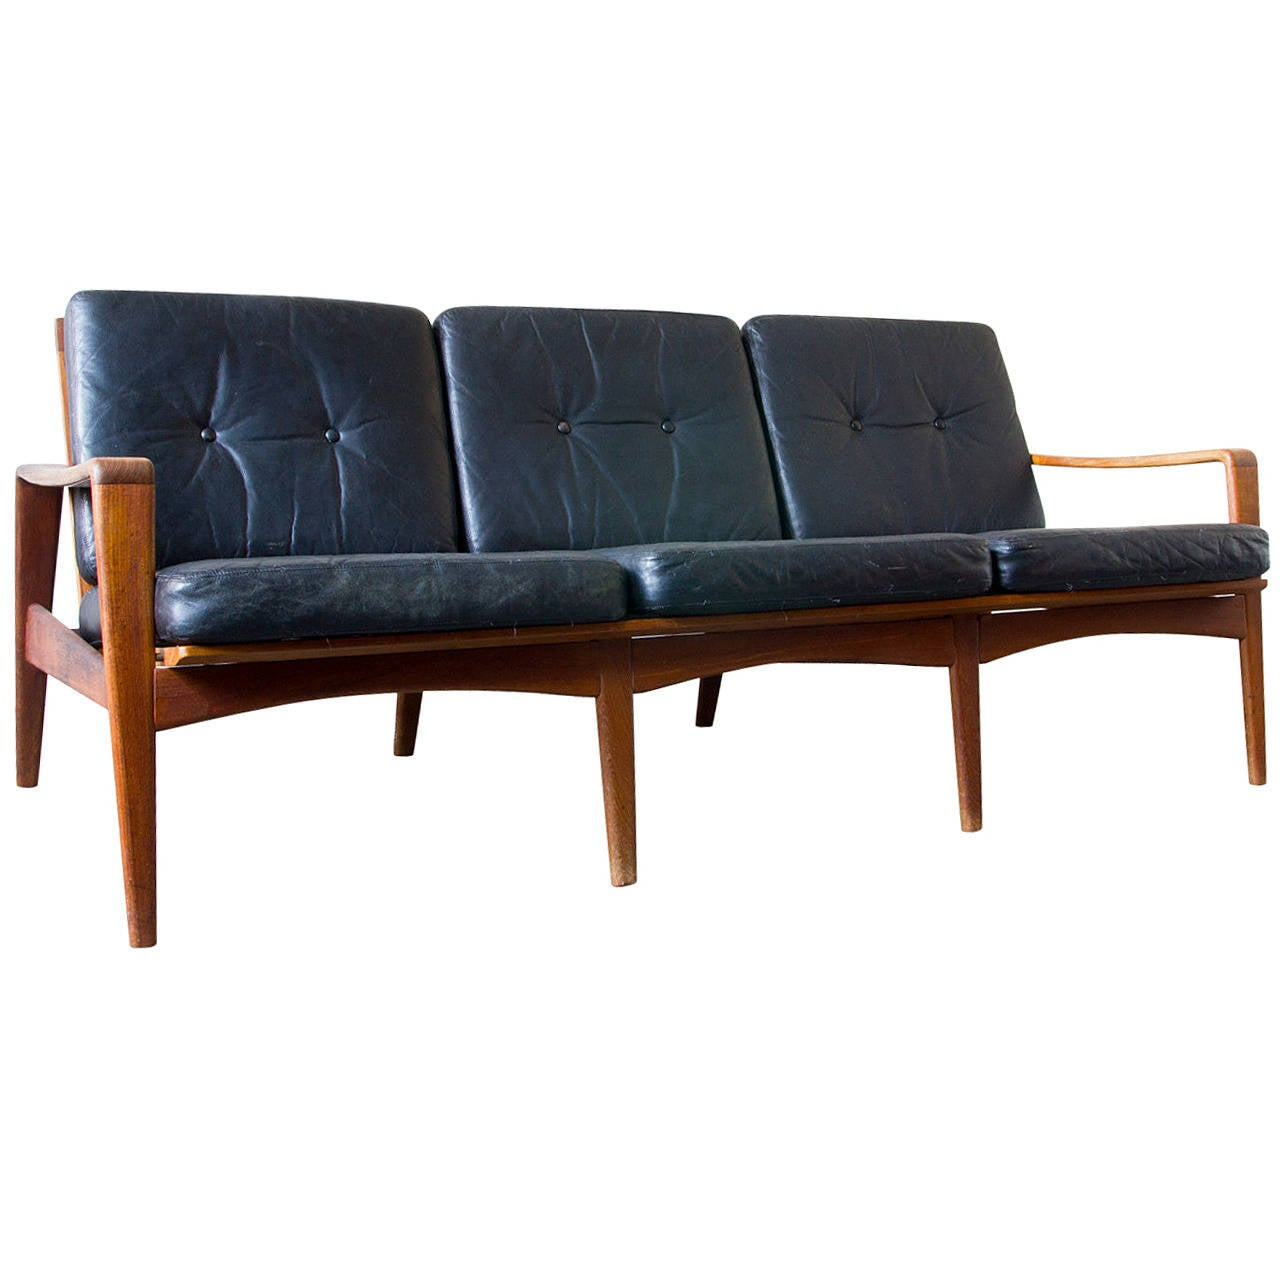 arne wahl iversen komfort sofa at 1stdibs. Black Bedroom Furniture Sets. Home Design Ideas